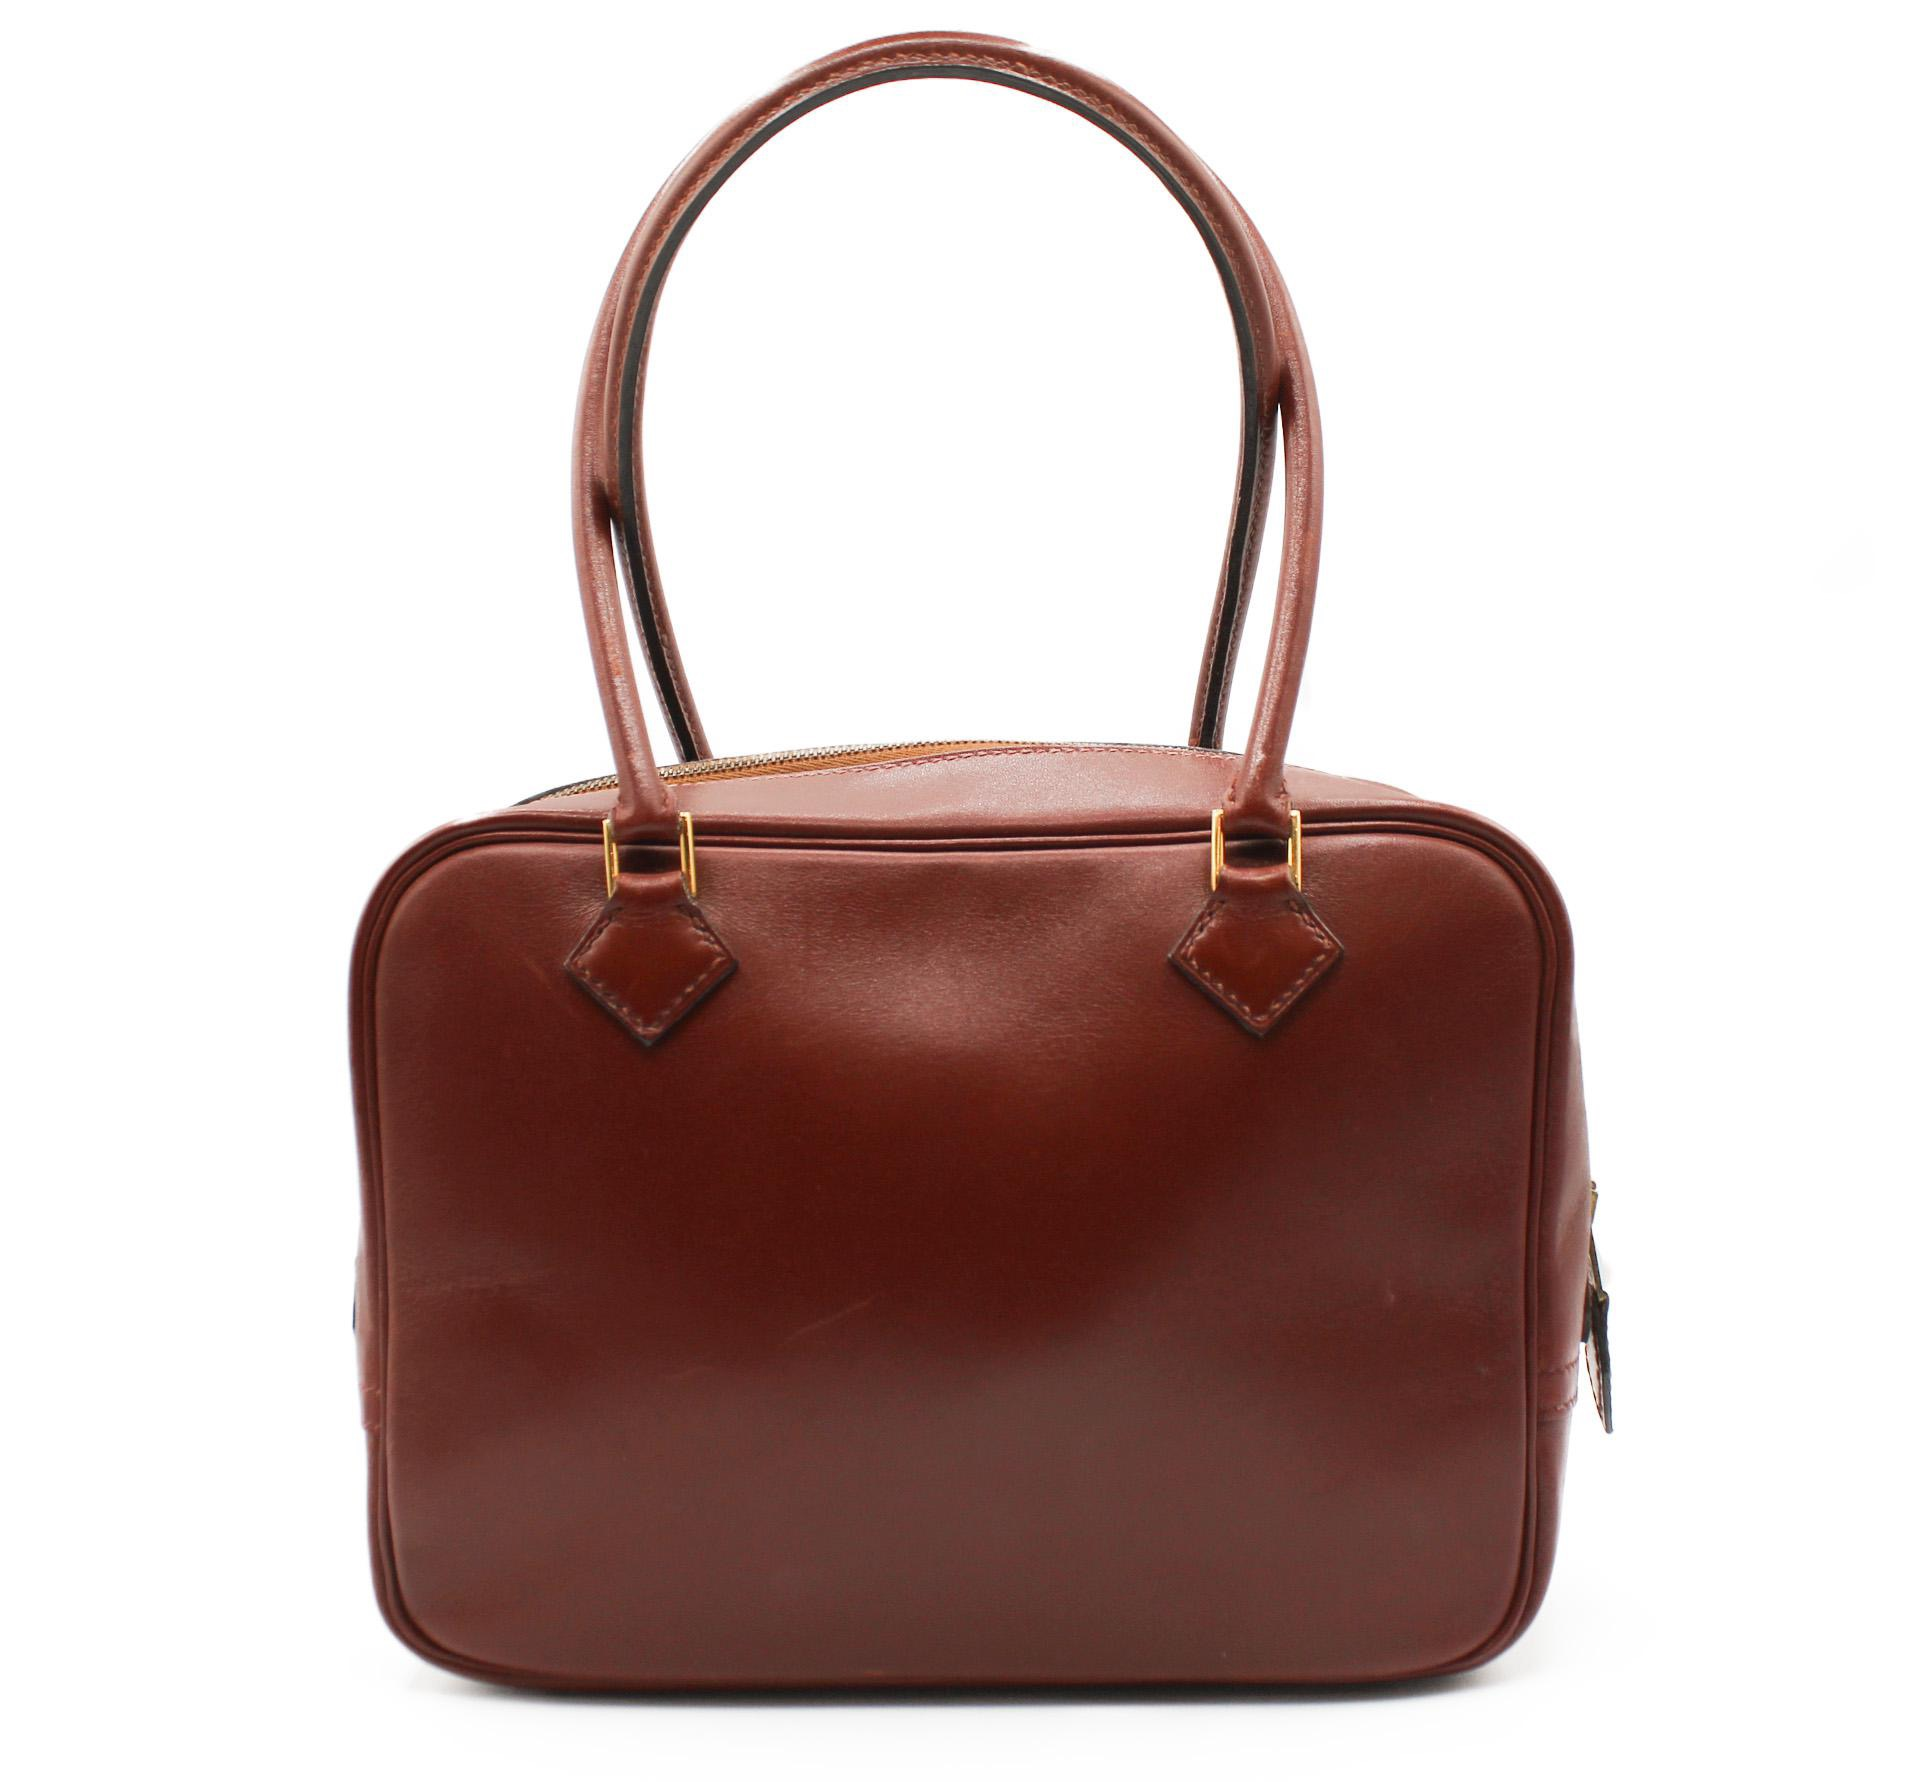 A picture containing accessory, bag  Description automatically generated